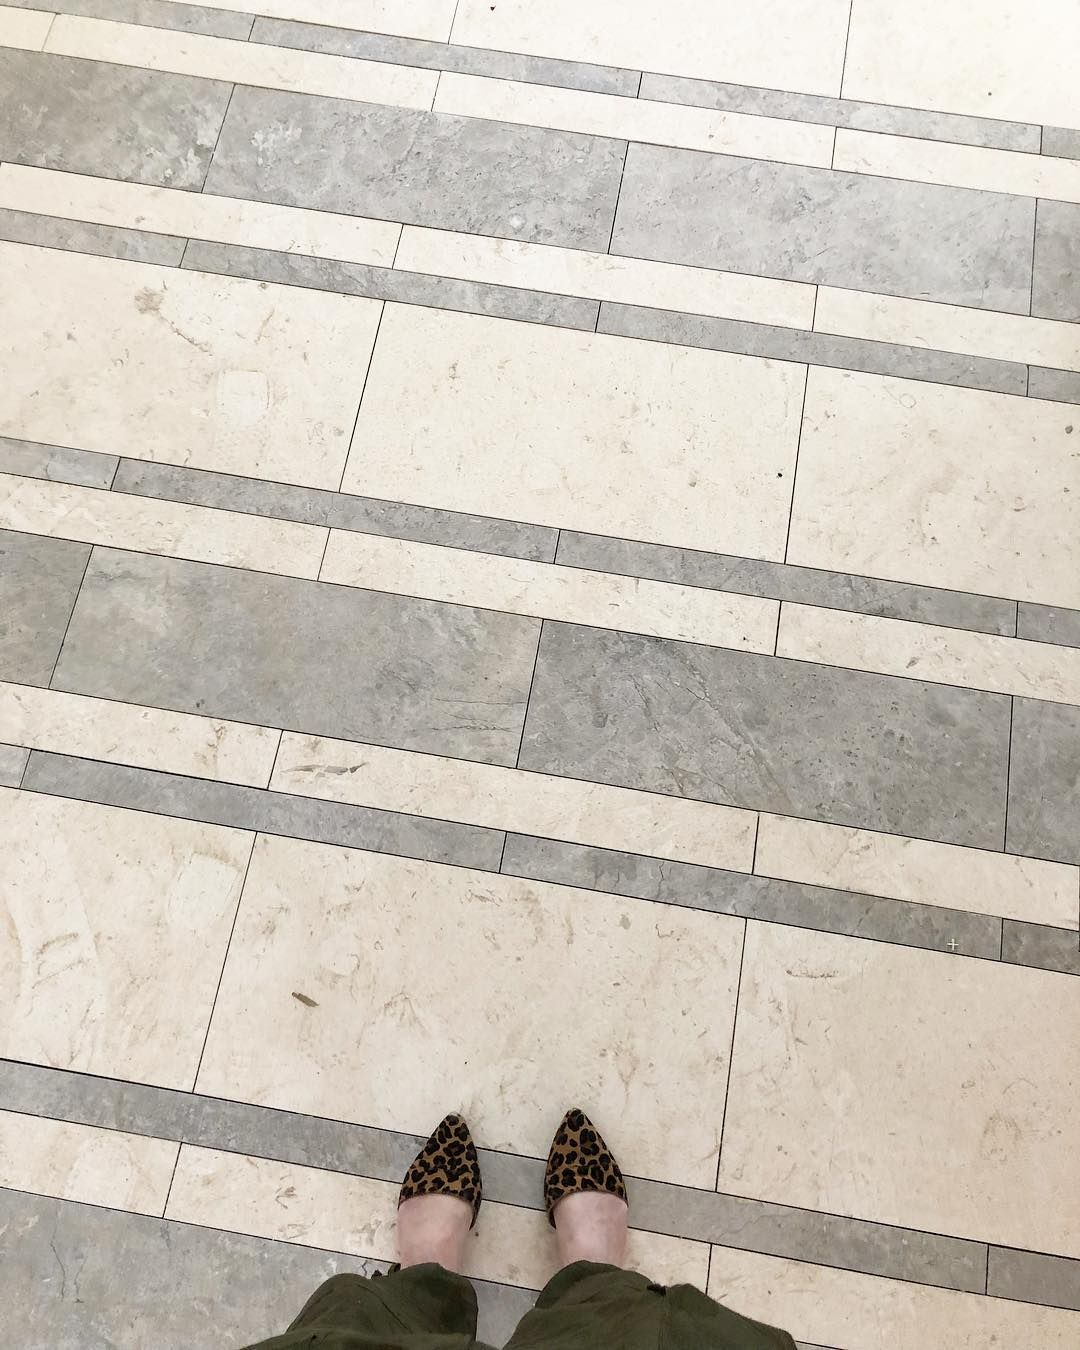 A Shoefie Is A Must When The Tile Looks This Good